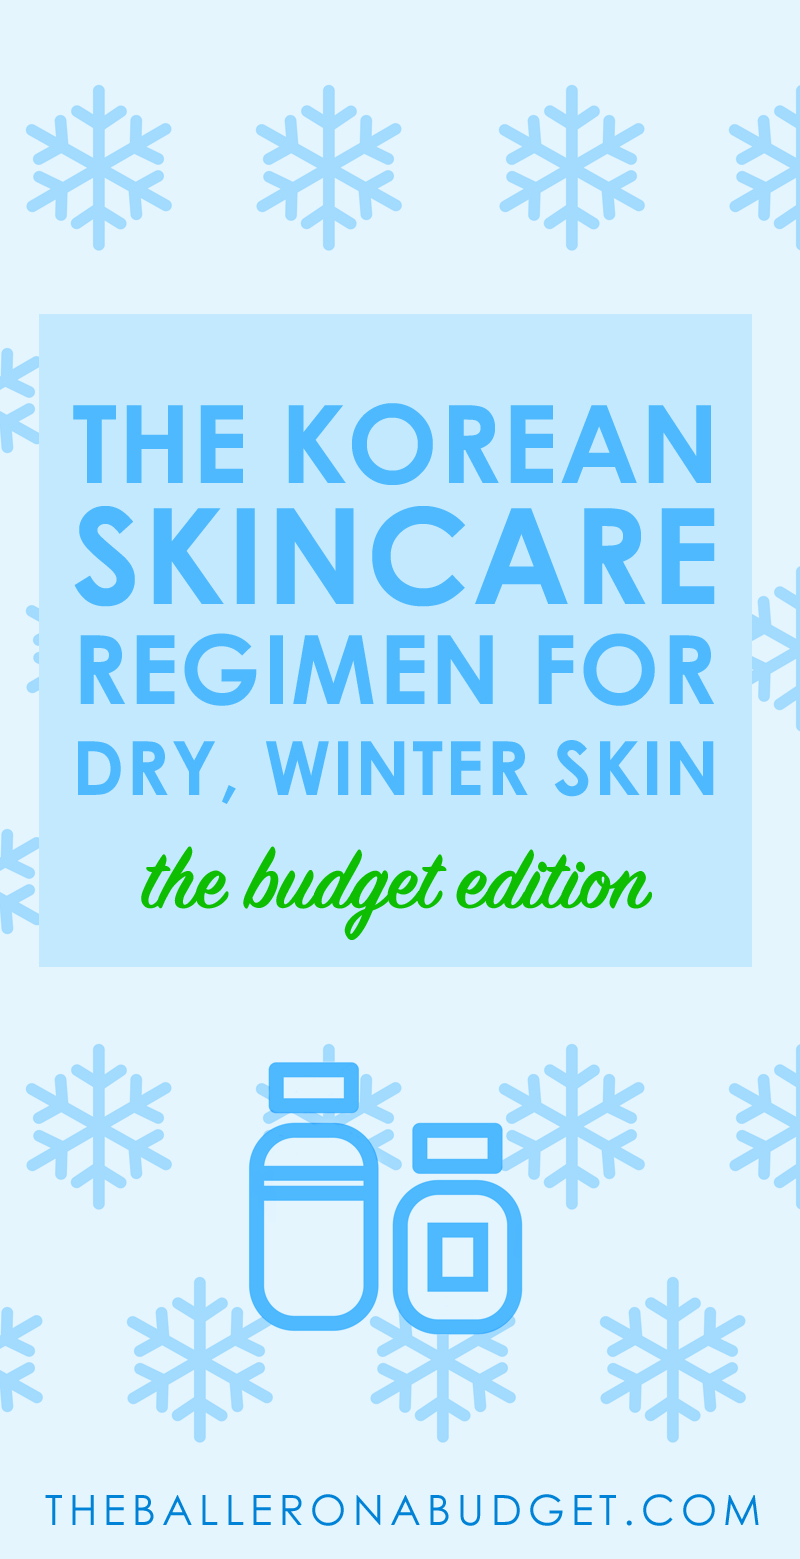 Do you suffer from dry skin during winter time? Here is a complete Korean skincare regimen just for dry skin under $200, curated by a licensed esthetician. - www.theballeronabudget.com